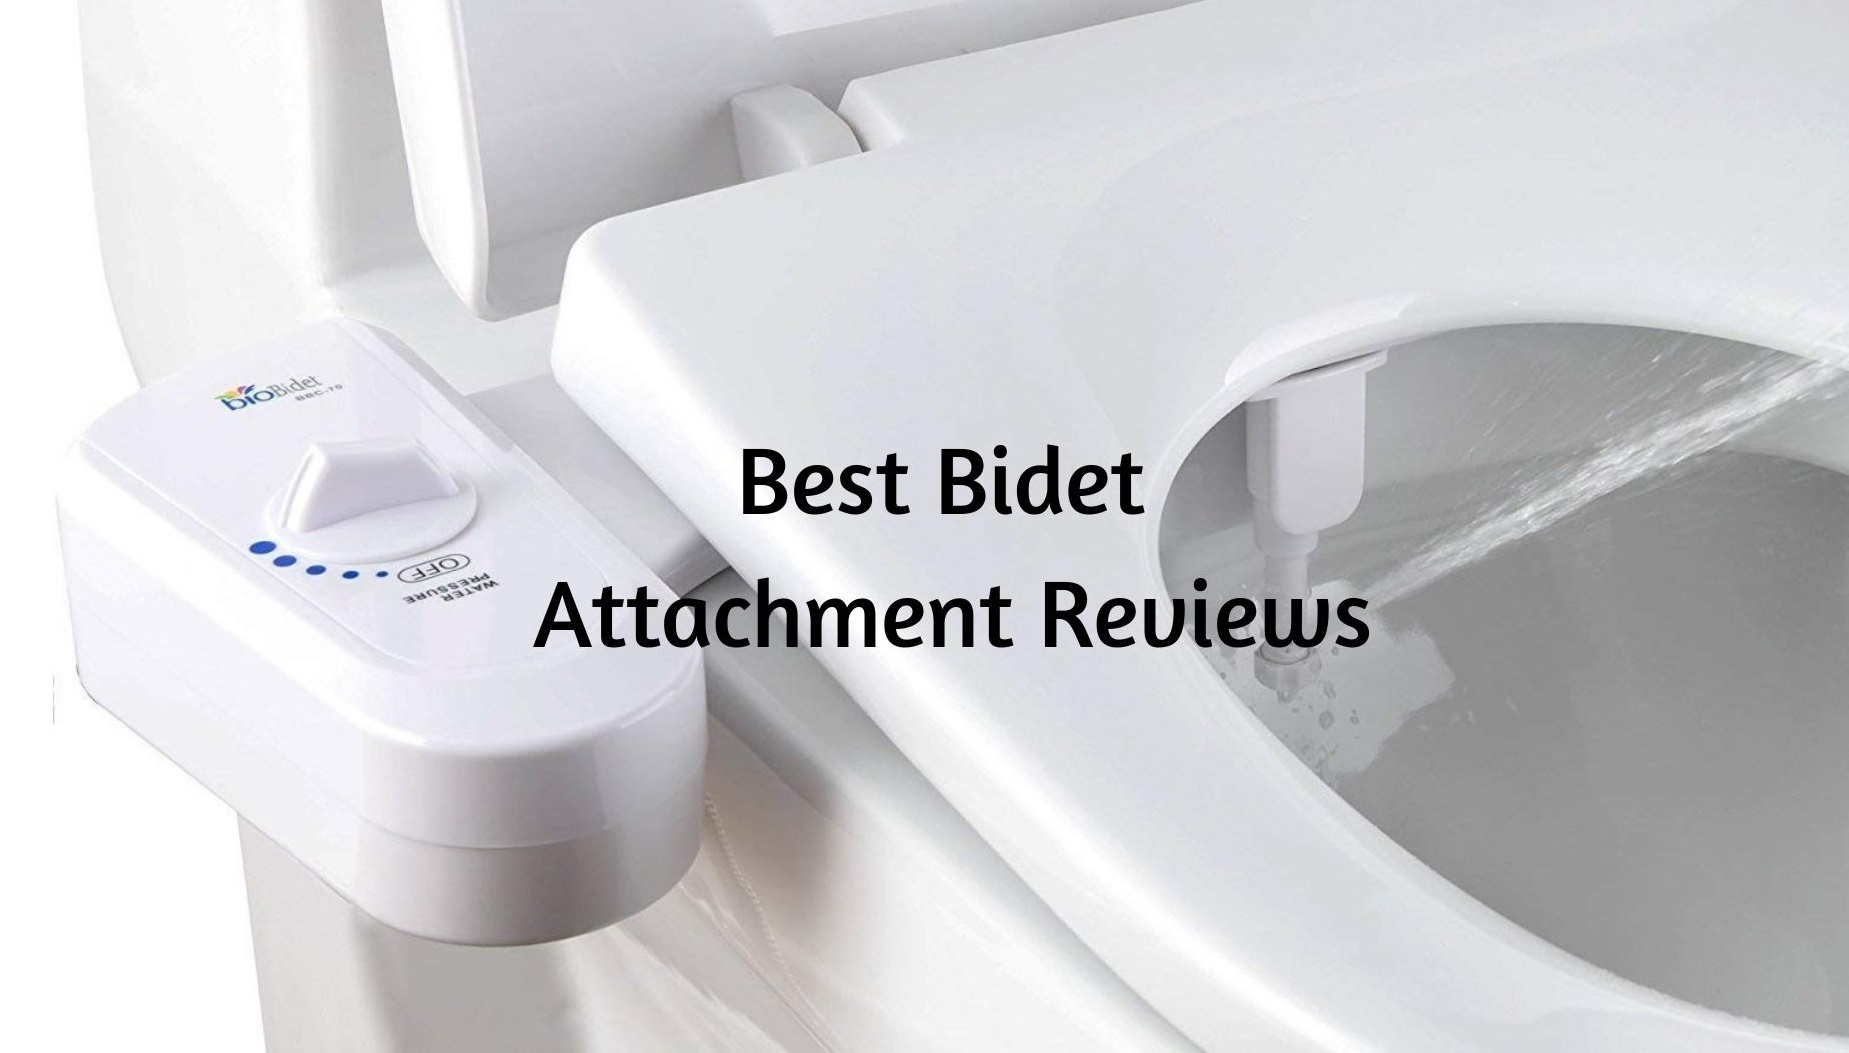 Astounding Ten Best Bidet Attachment Reviews For 2019 Top Ten Select Inzonedesignstudio Interior Chair Design Inzonedesignstudiocom